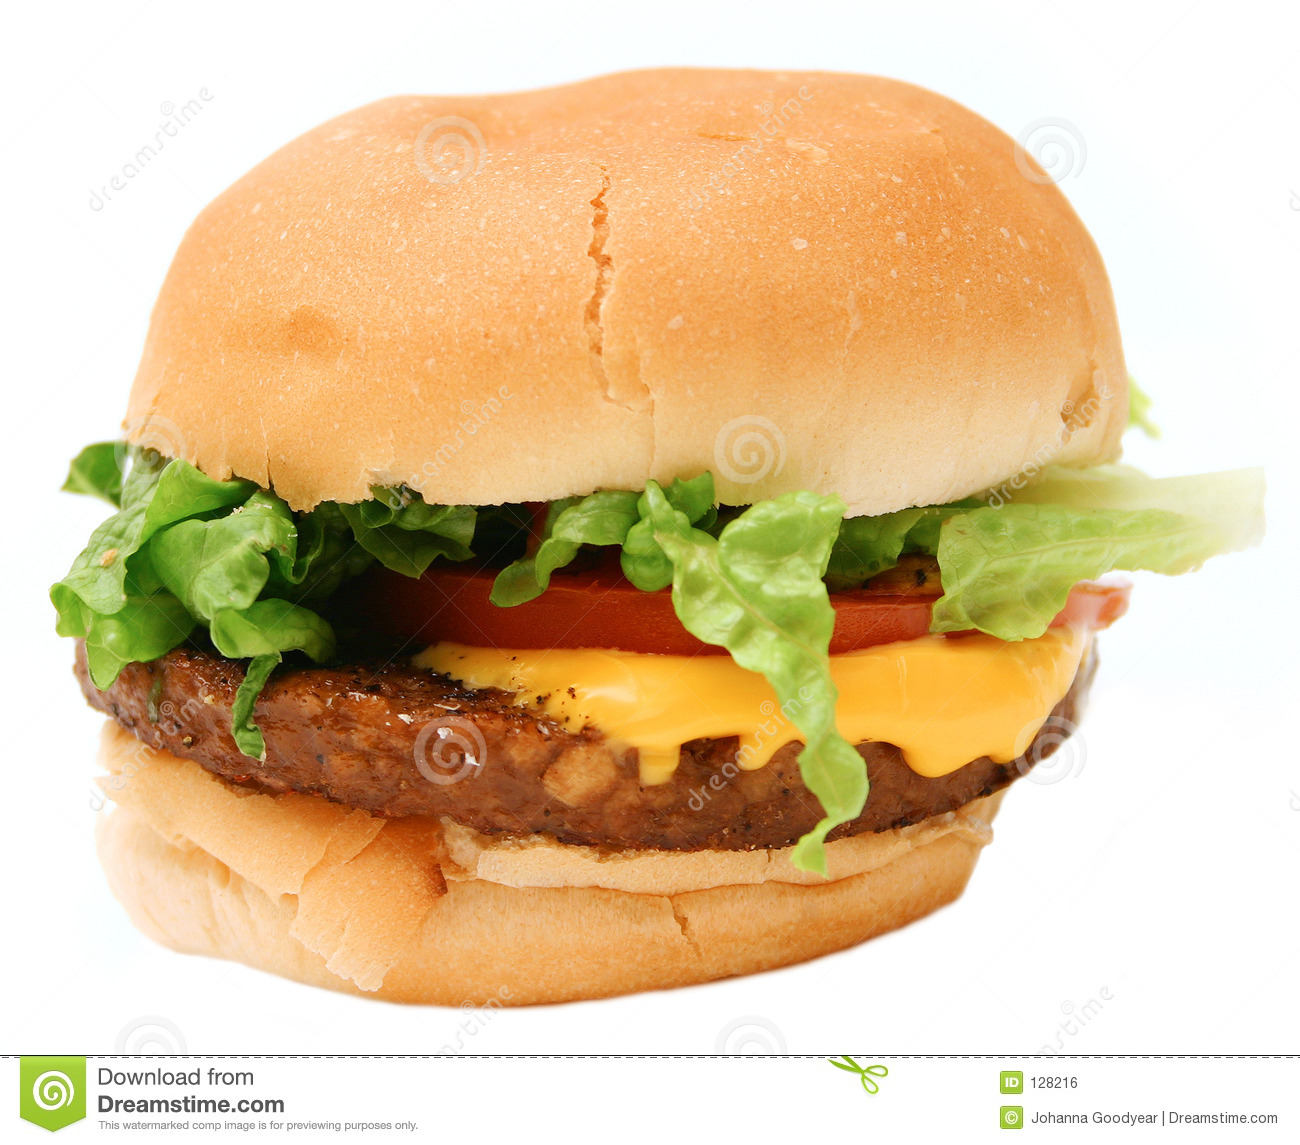 Veggie Burger Royalty Free Stock Image - Image: 128216